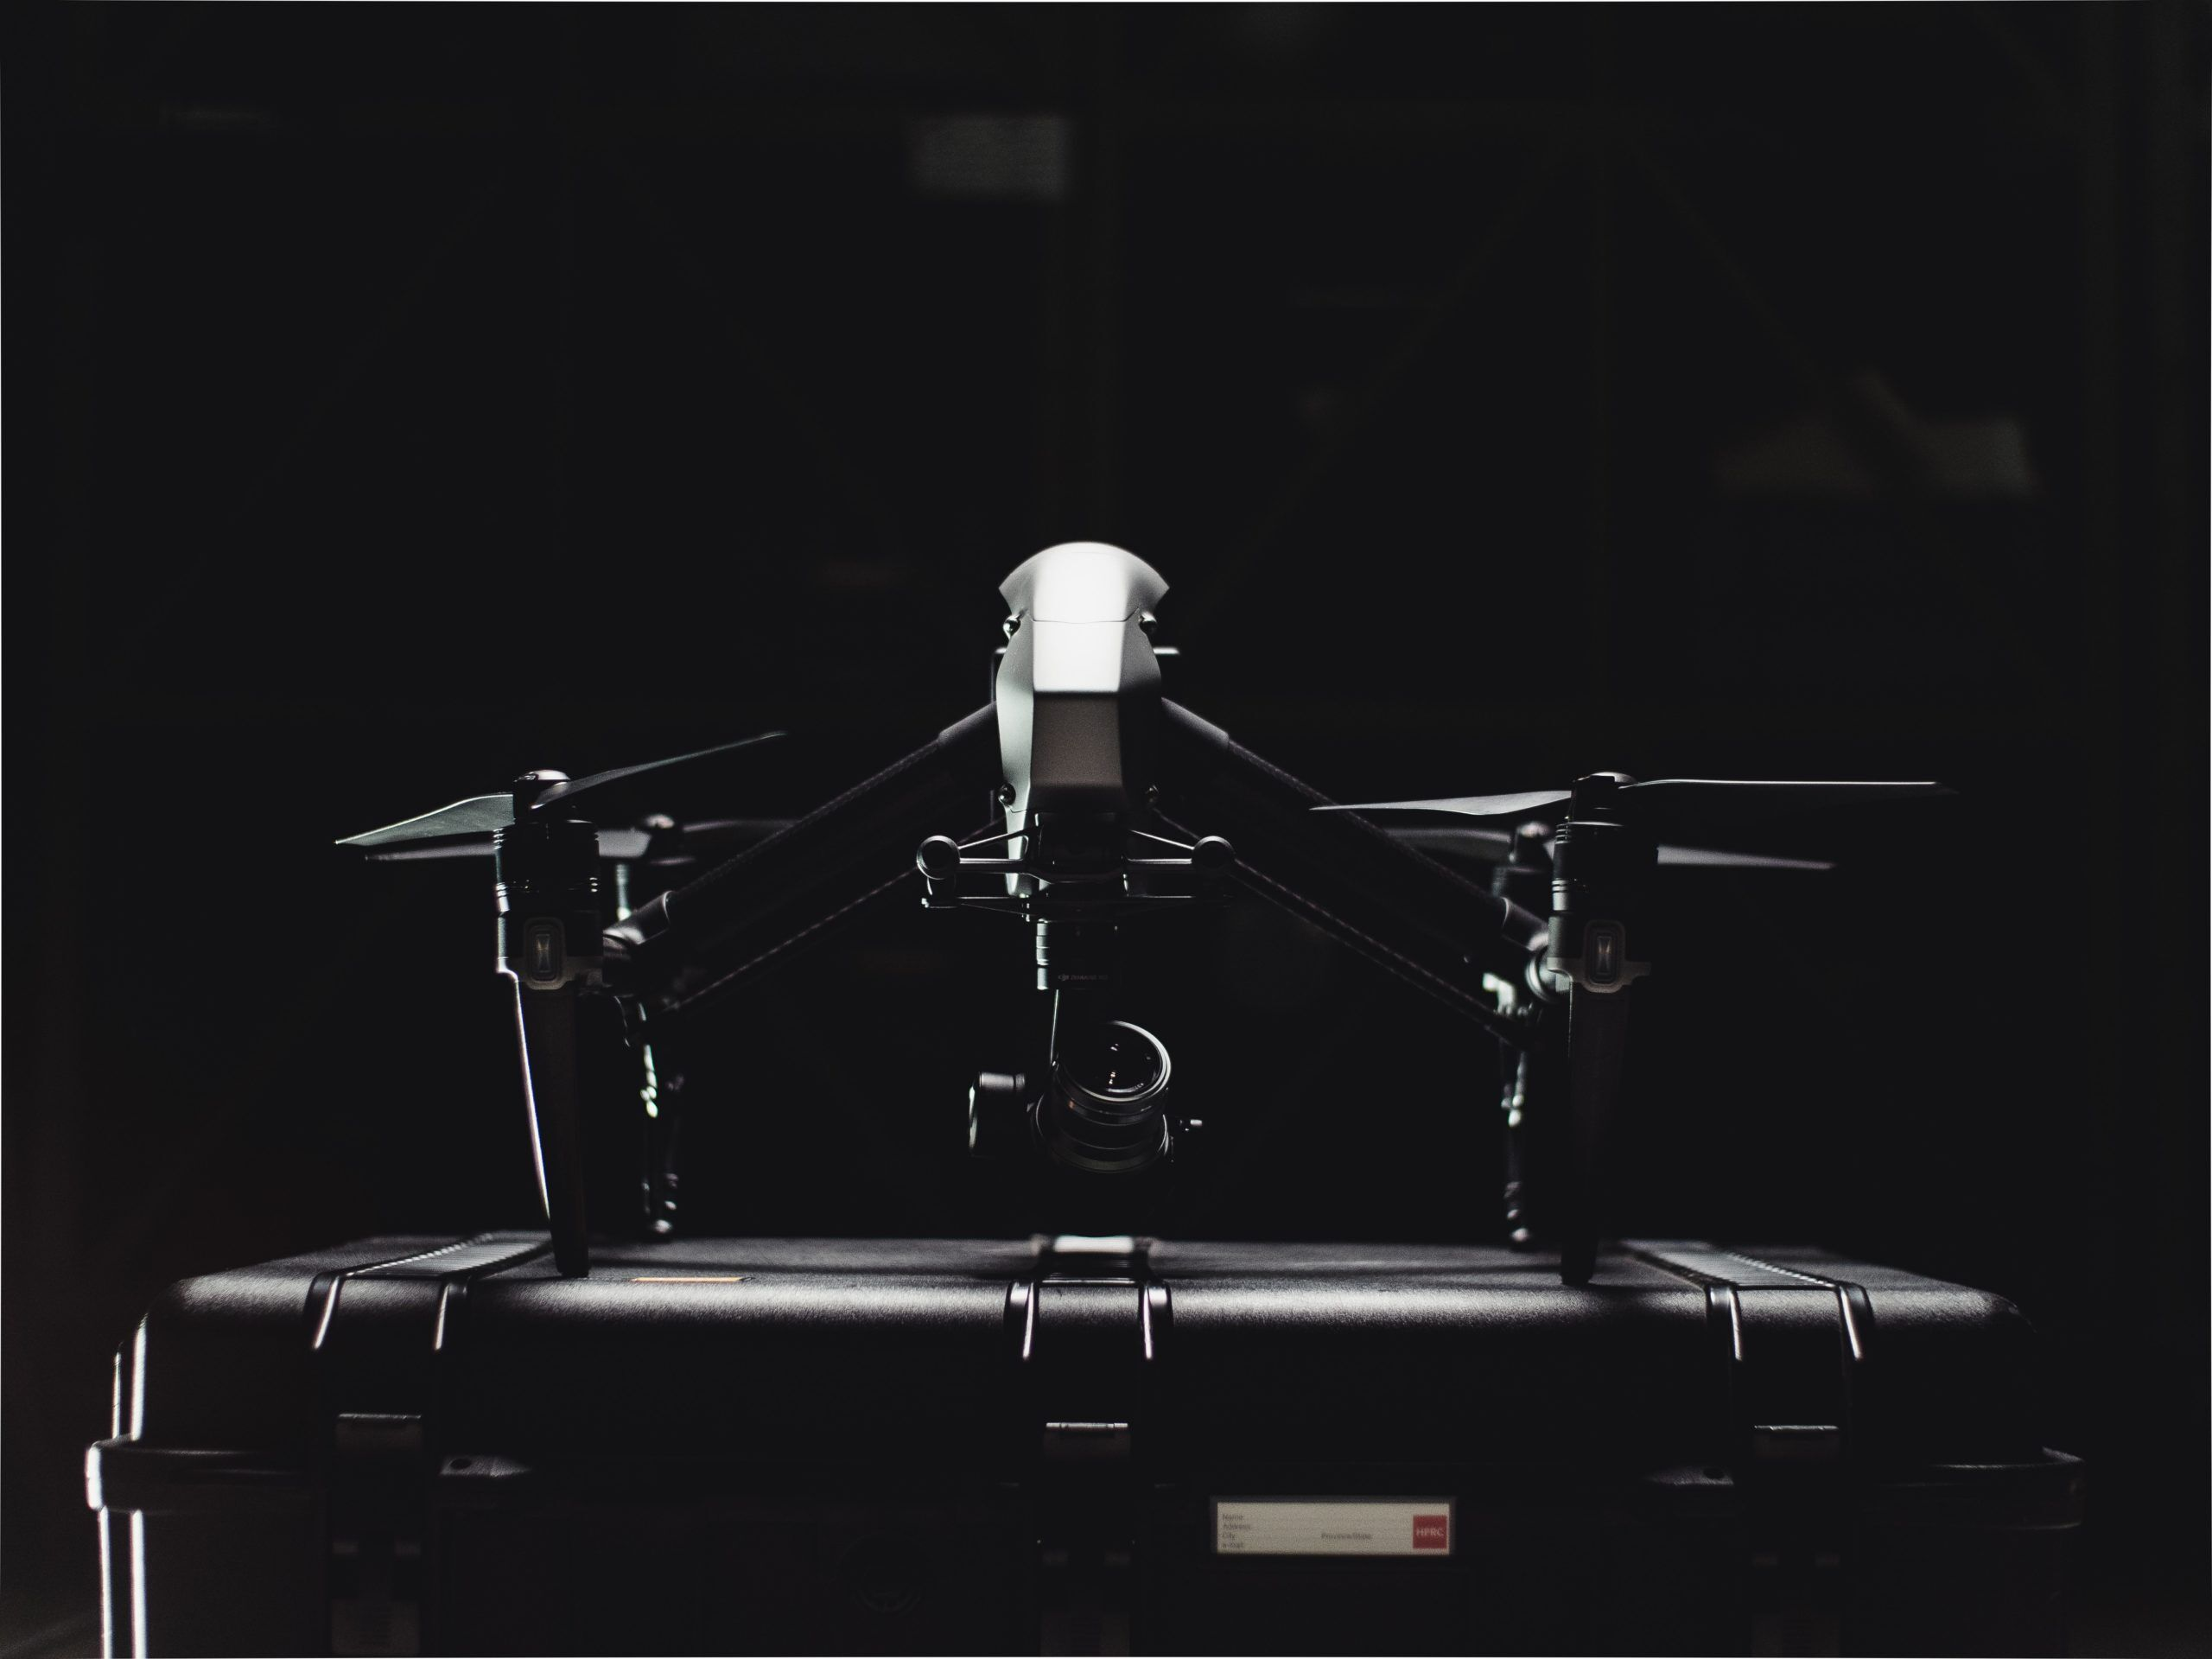 black-and-white-photo-of-drone-2050718